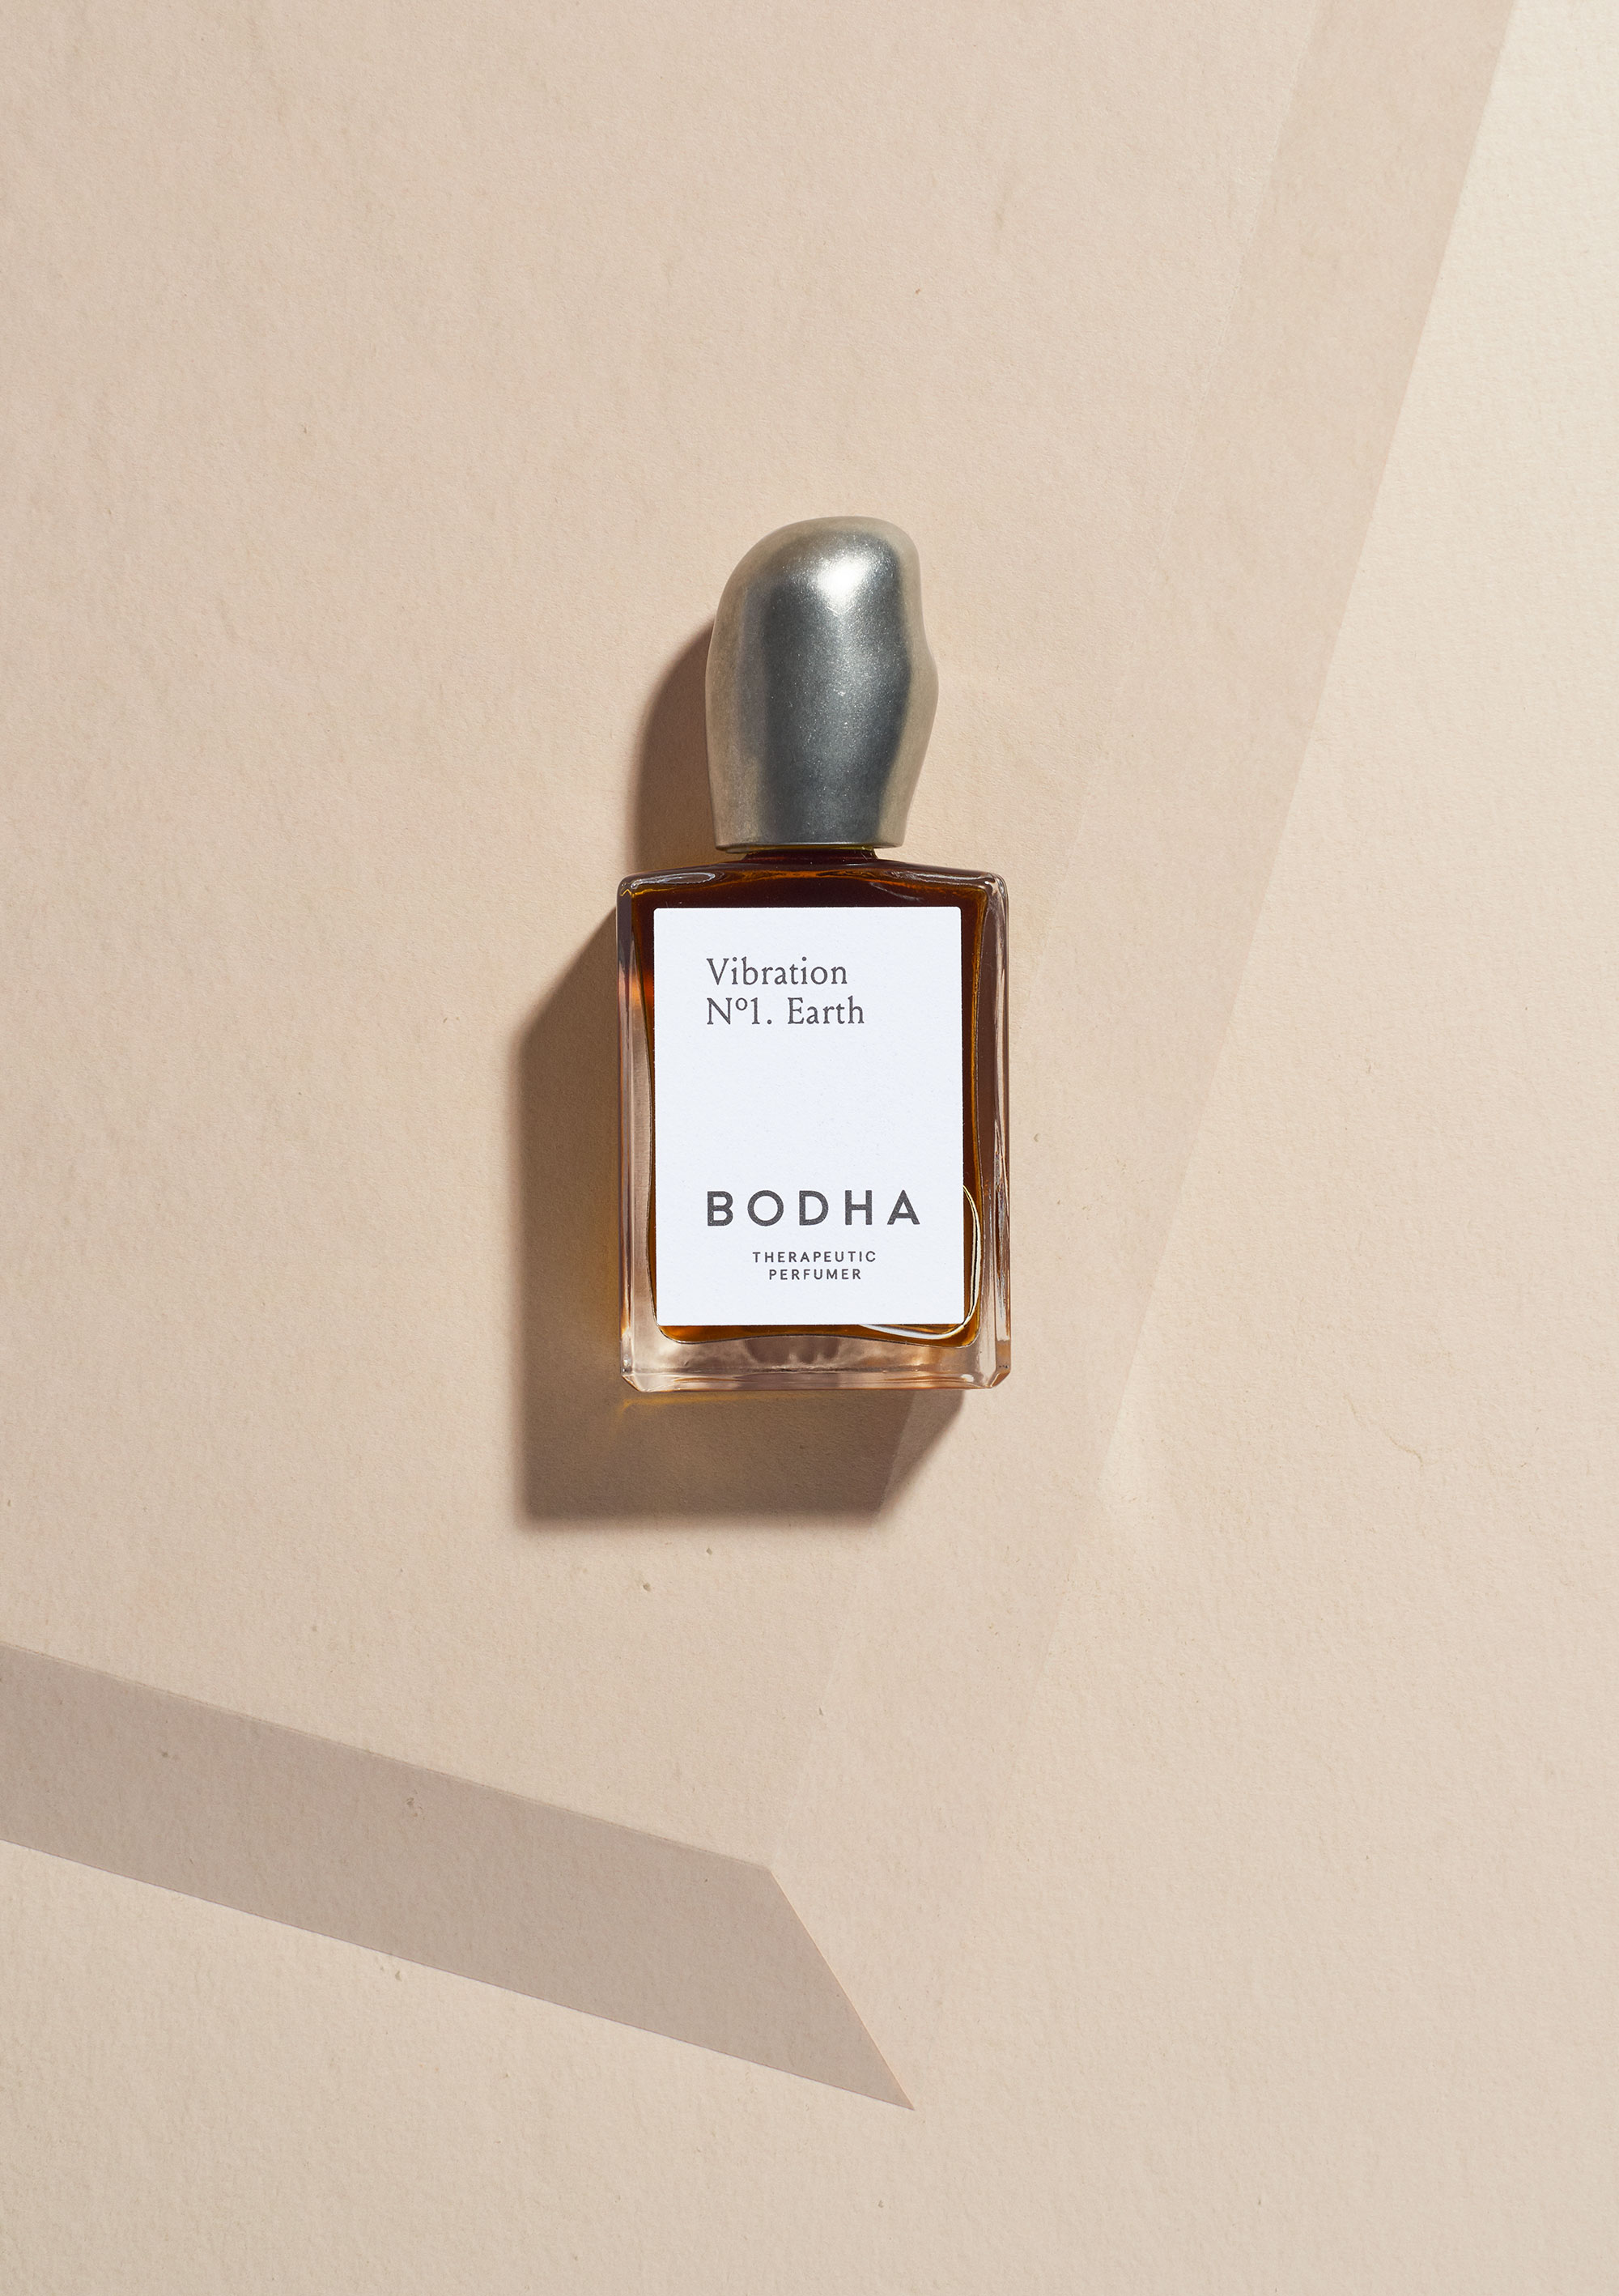 BODHA Vibration Perfume - Nº1 Earth